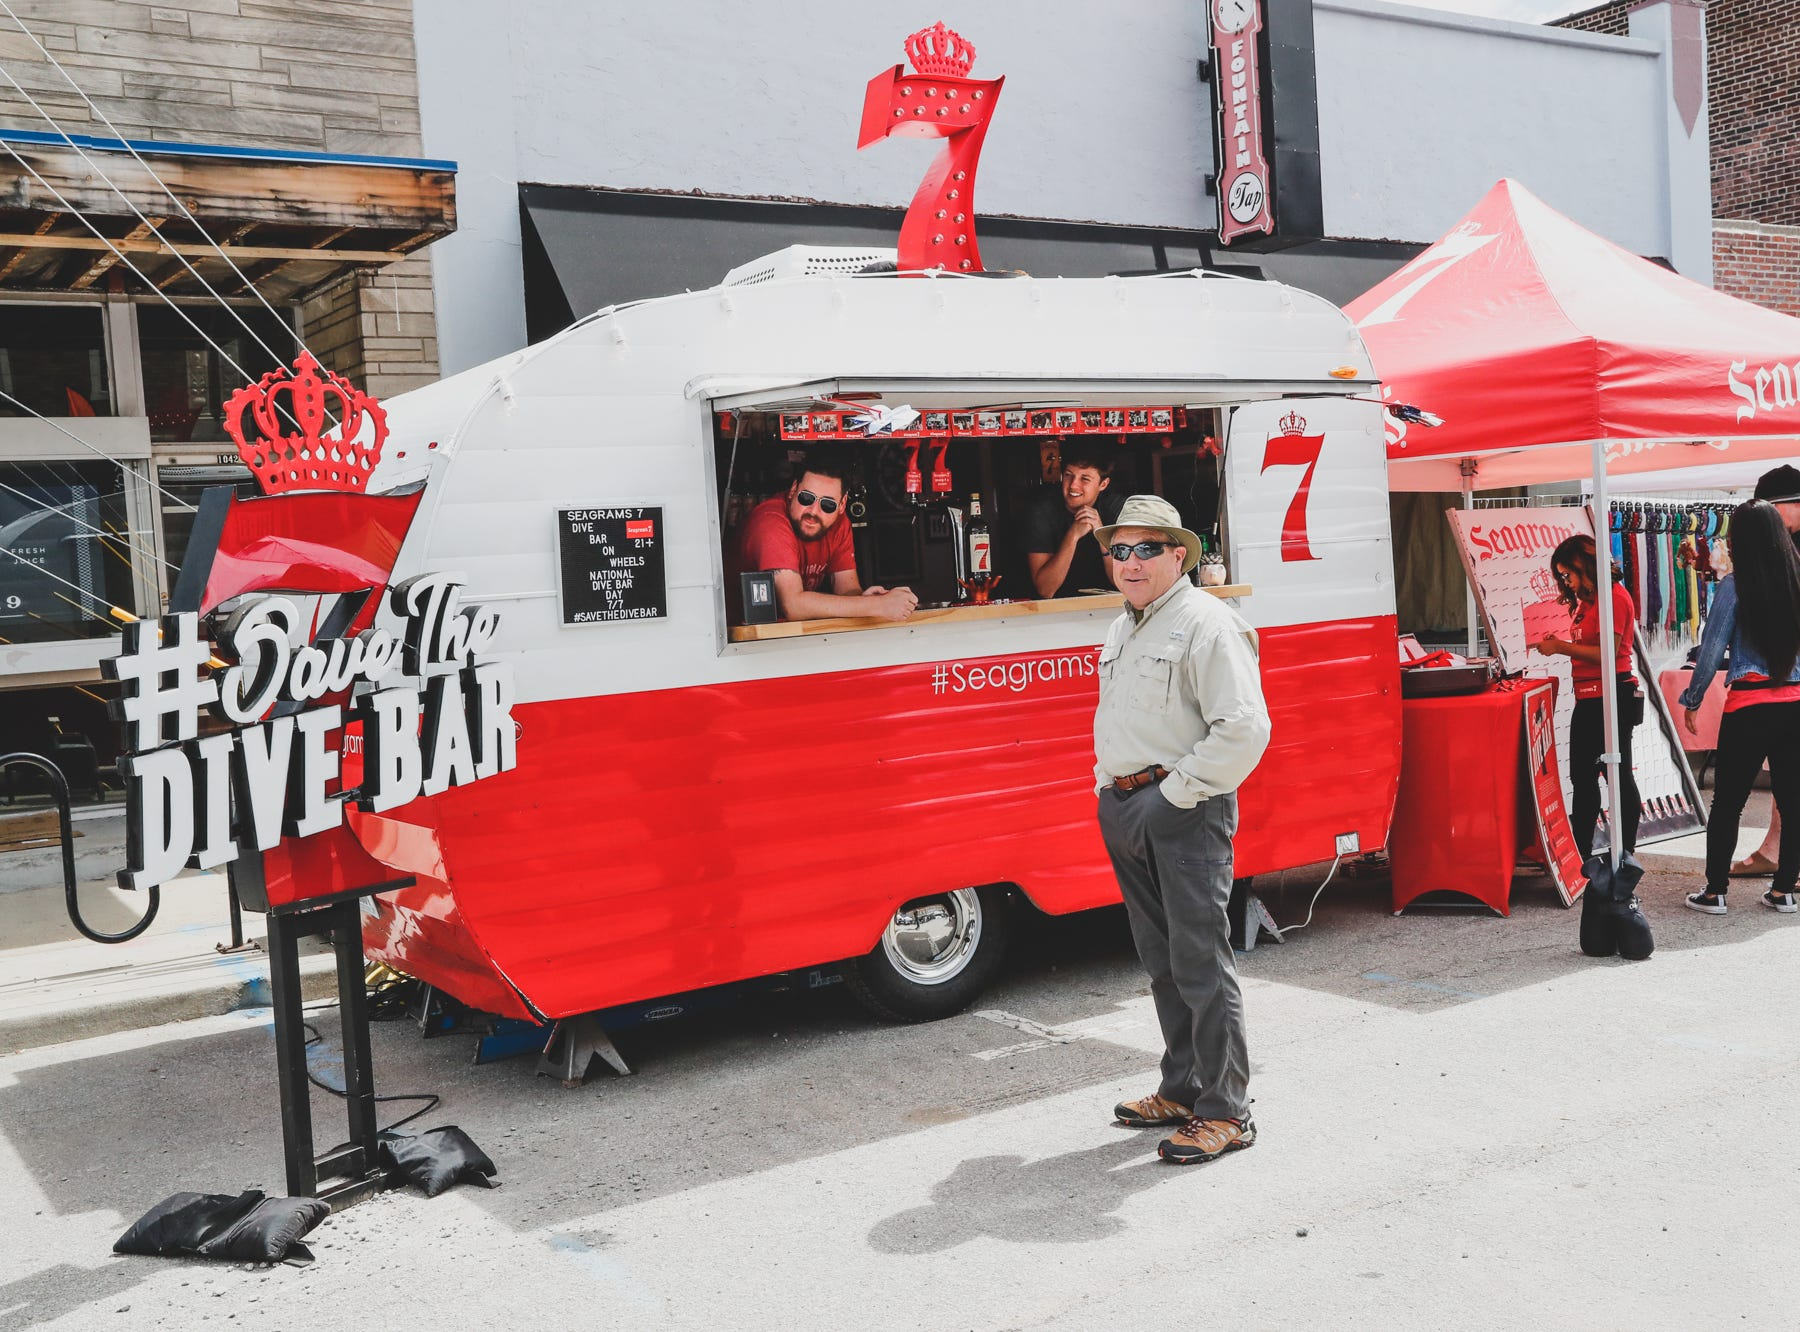 A megrims & drink truck sets up for the Virginia Avenue Music Fest, held in Fountain Square, located in Indianapolis, on Saturday, May 11, 2019.